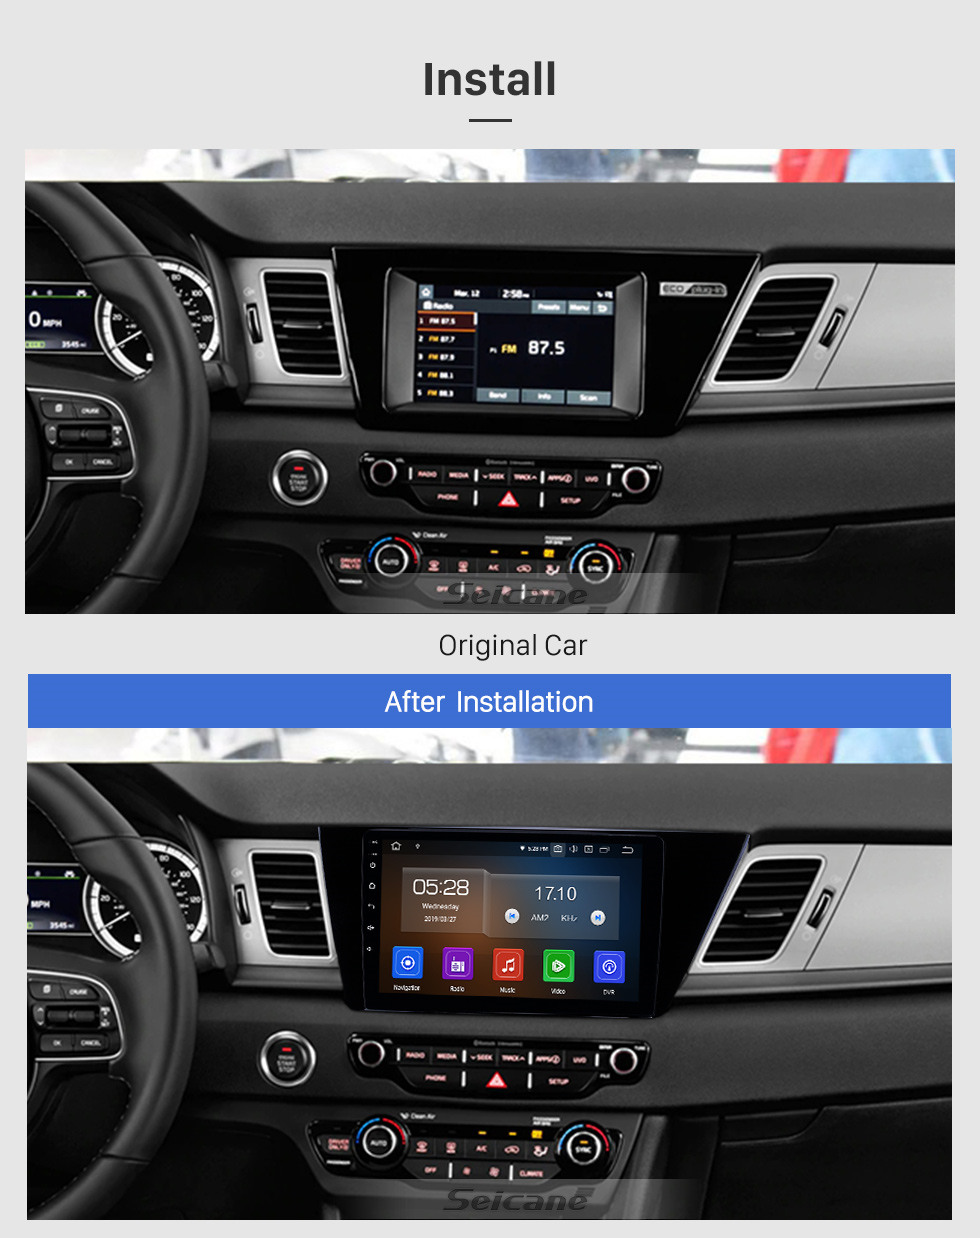 Seicane 2016-2019 Kia Niro 9 inch Android 10.0 GPS Navigation Radio Bluetooth HD Touchscreen USB Carplay Music AUX support TPMS OBD2 Rearview camera